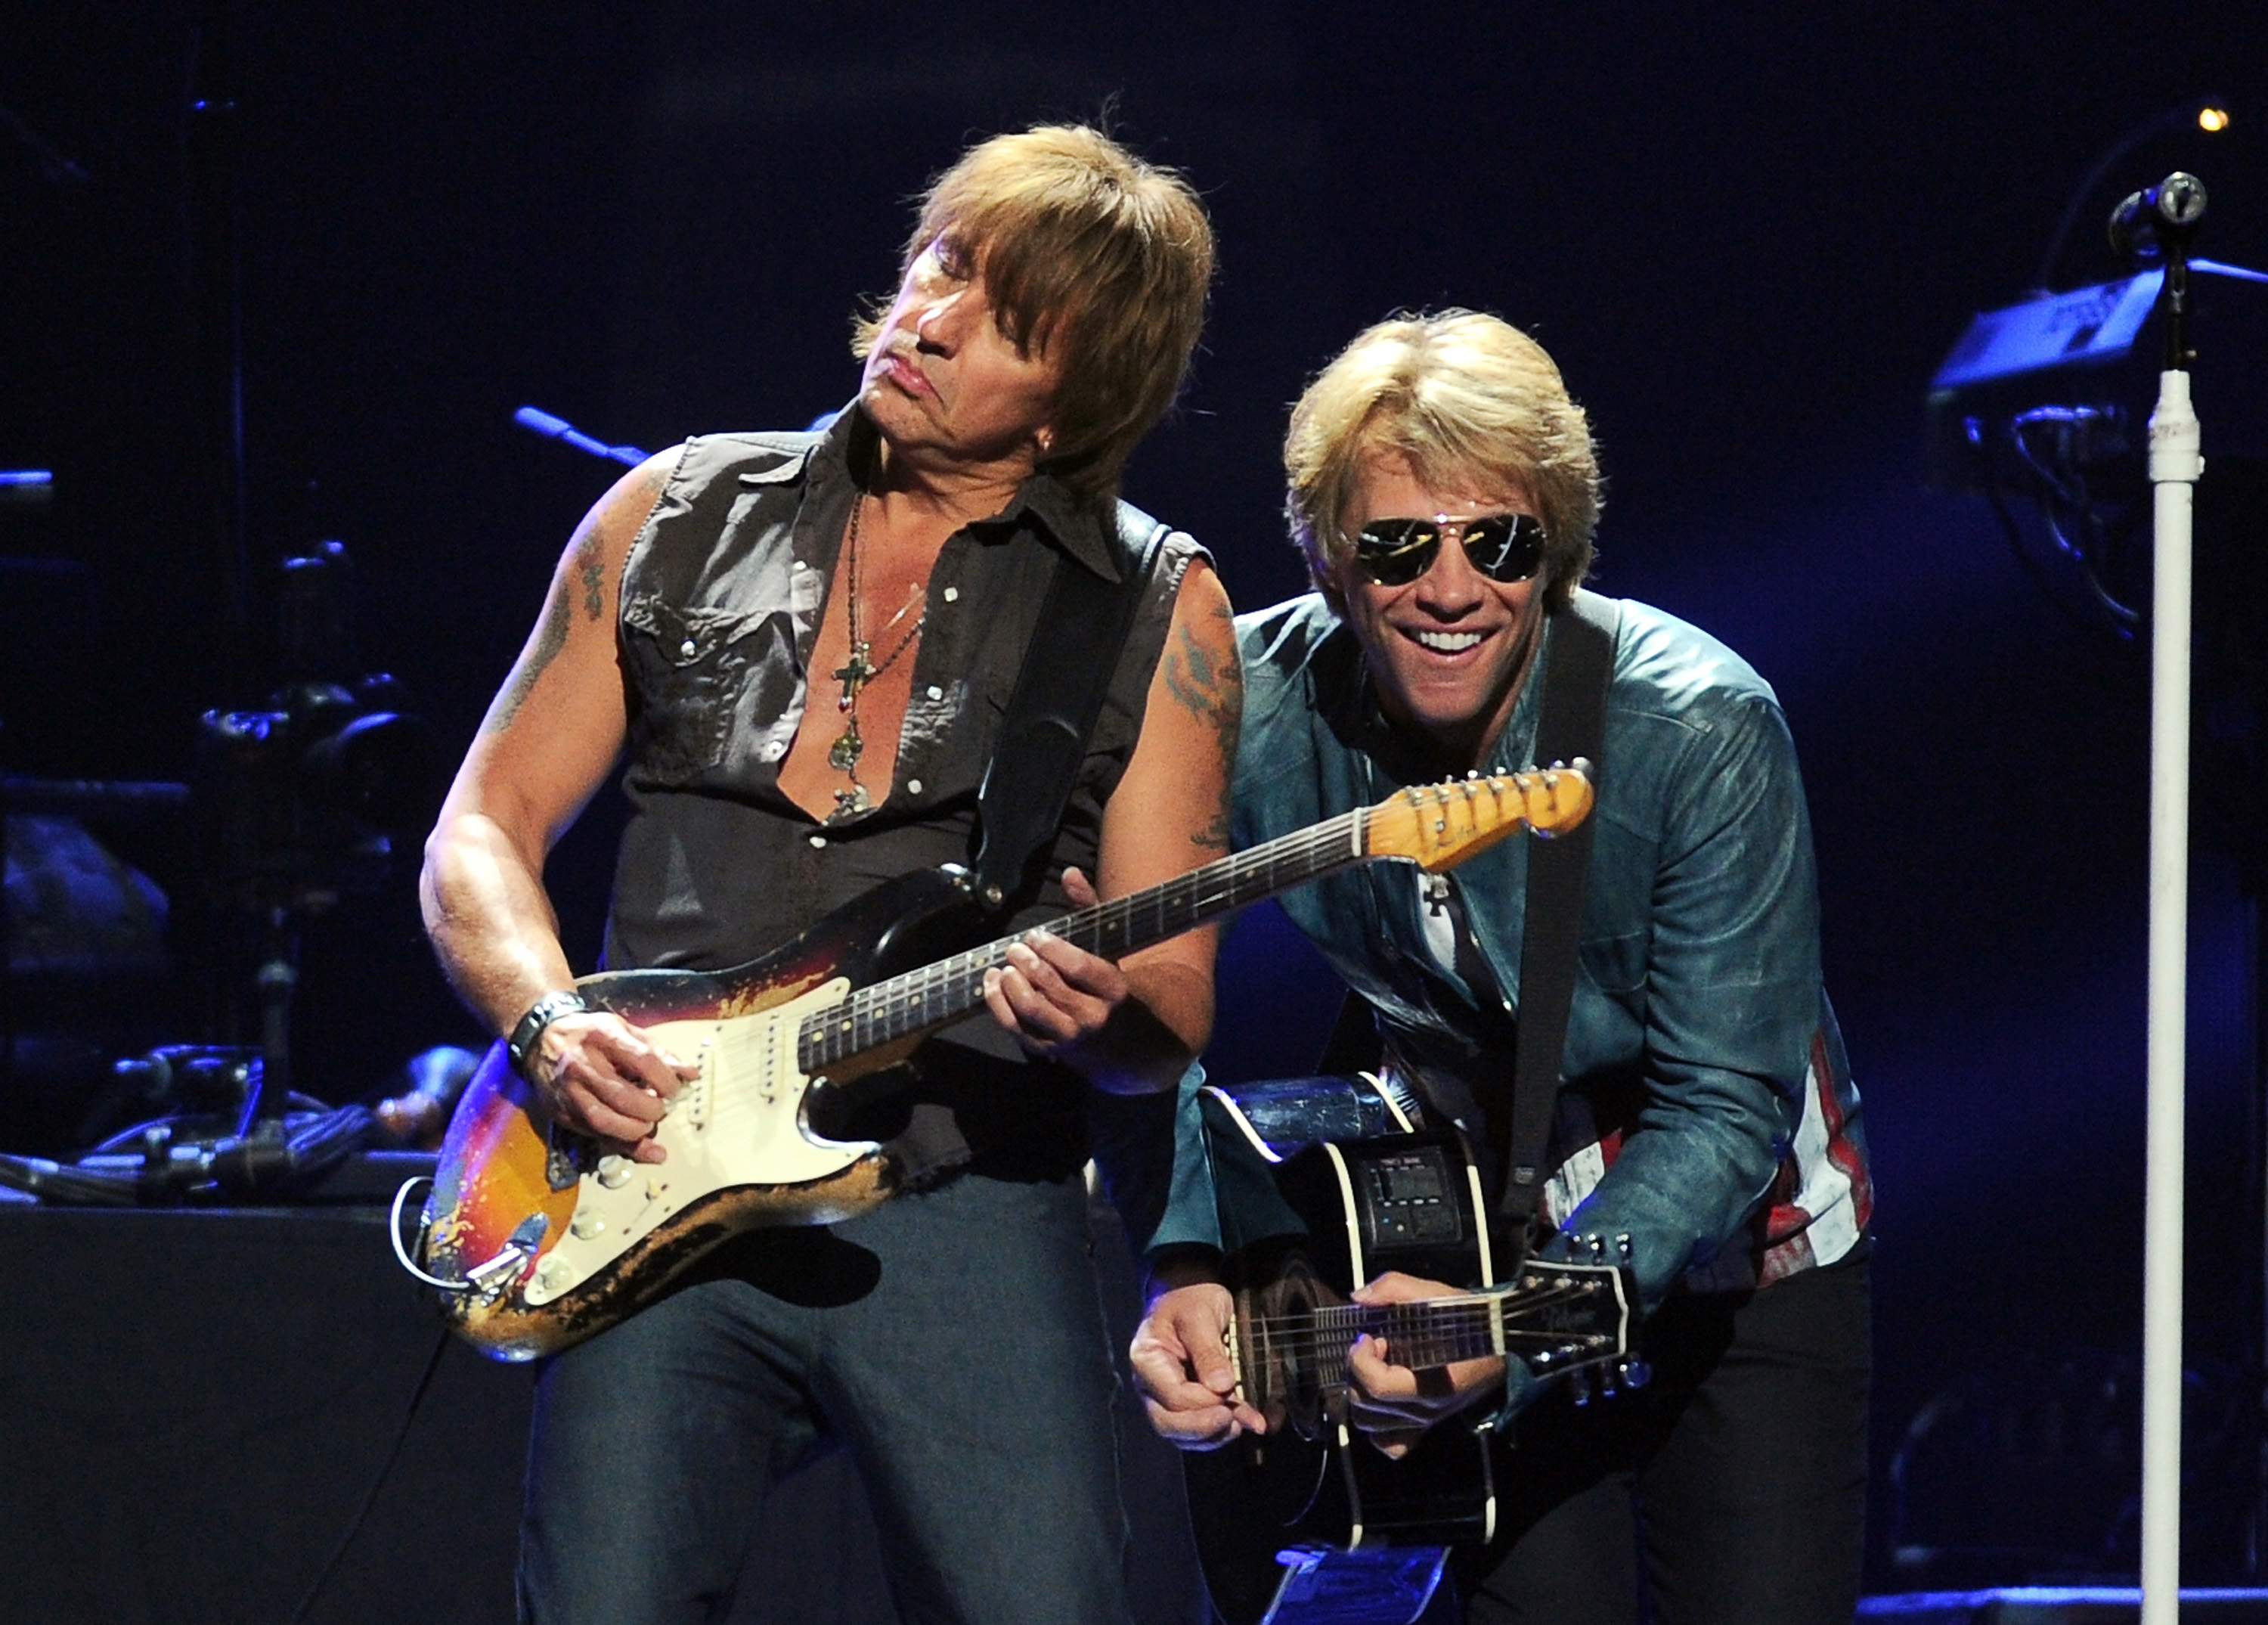 LAS VEGAS, NV - SEPTEMBER 21:  Guitarist Richie Sambora (L) and singer Jon Bon Jovi of Bon Jovi perform onstage during the 20